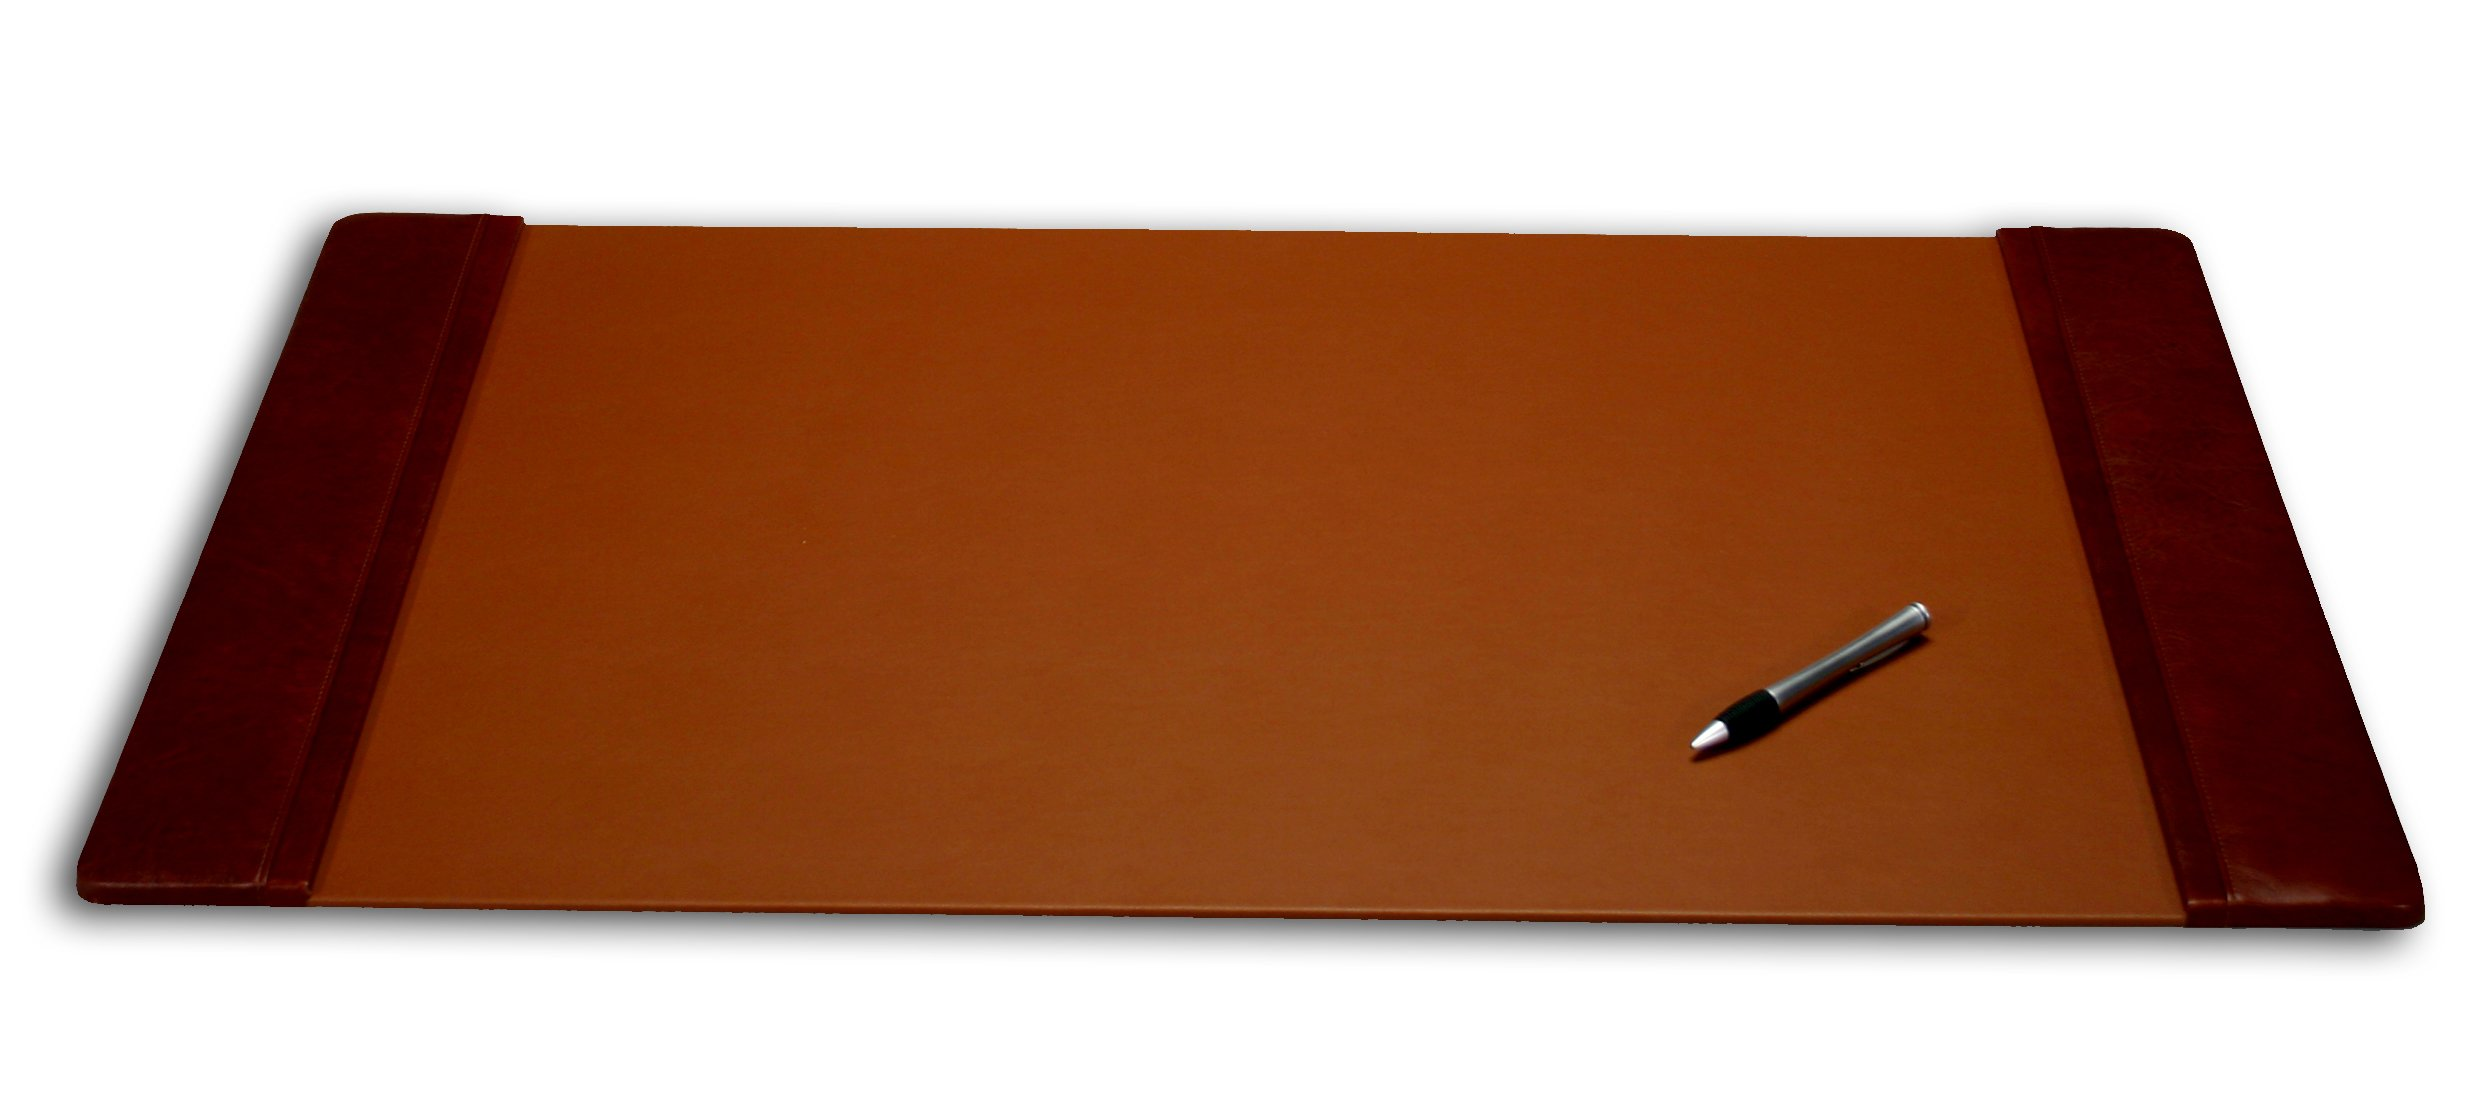 Dacasso Leather Office Desk Pad with Side Rails, 38 by 24-Inch, Mocha